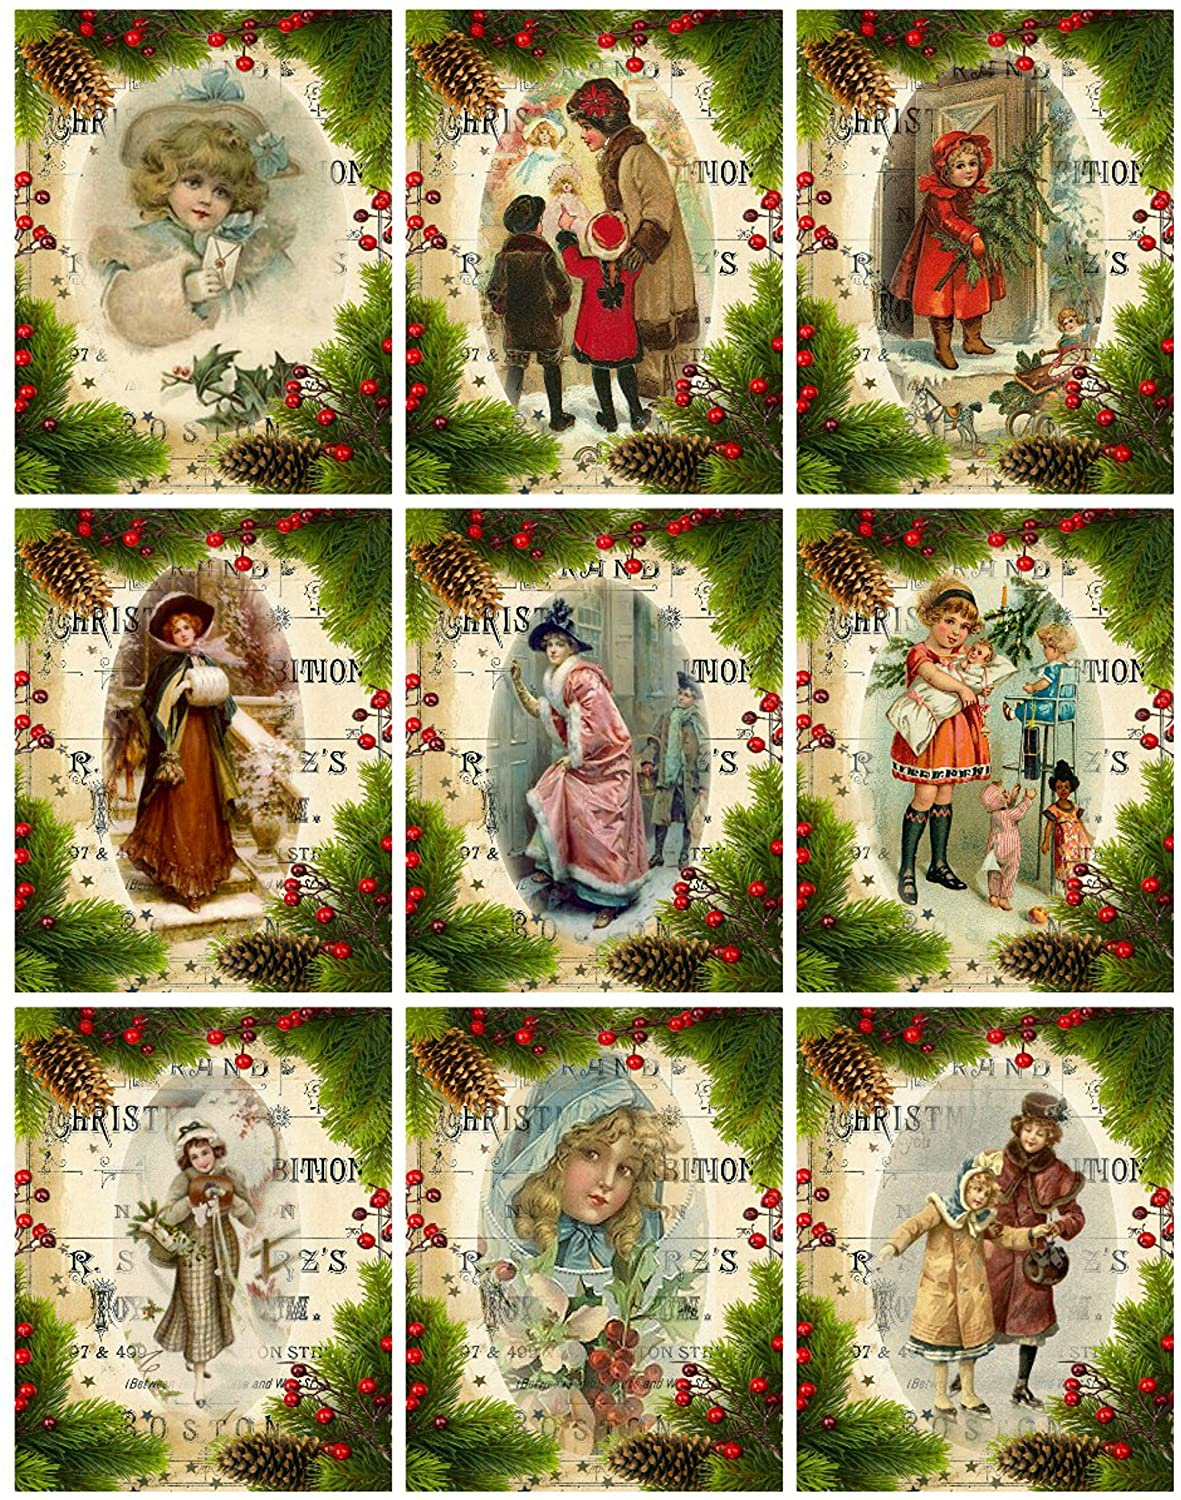 Victorian Images Vintage Christmas Graphics Collage Sheet, Digital Scrapbooking, Prints, ATC, Gift Tags 8.5 x 11